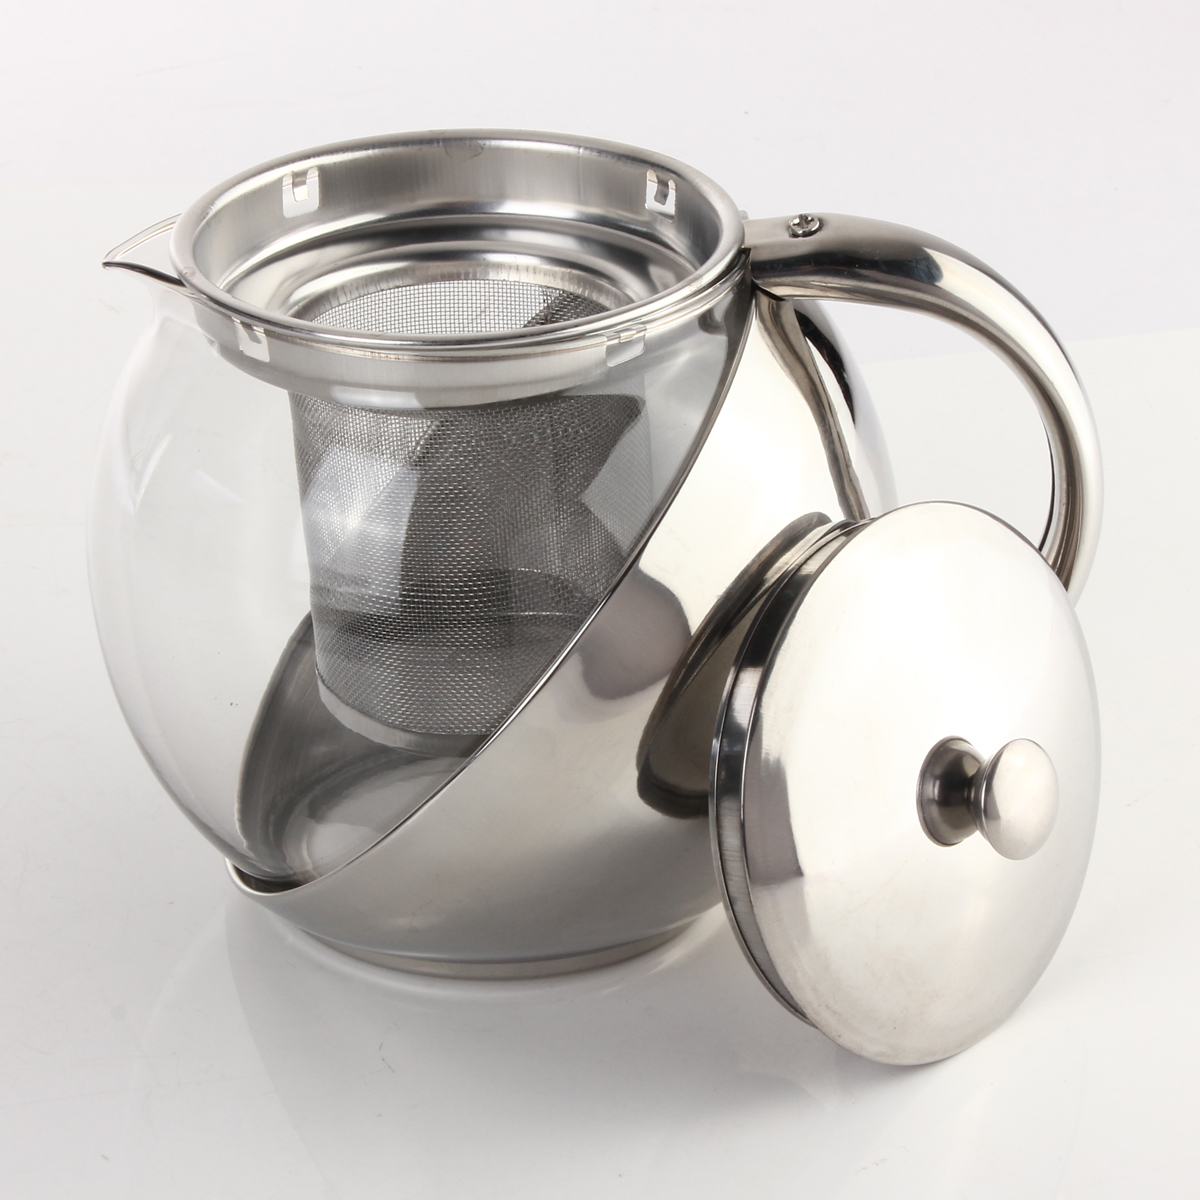 Ml stainless steel teapot coffee pot with loose tea